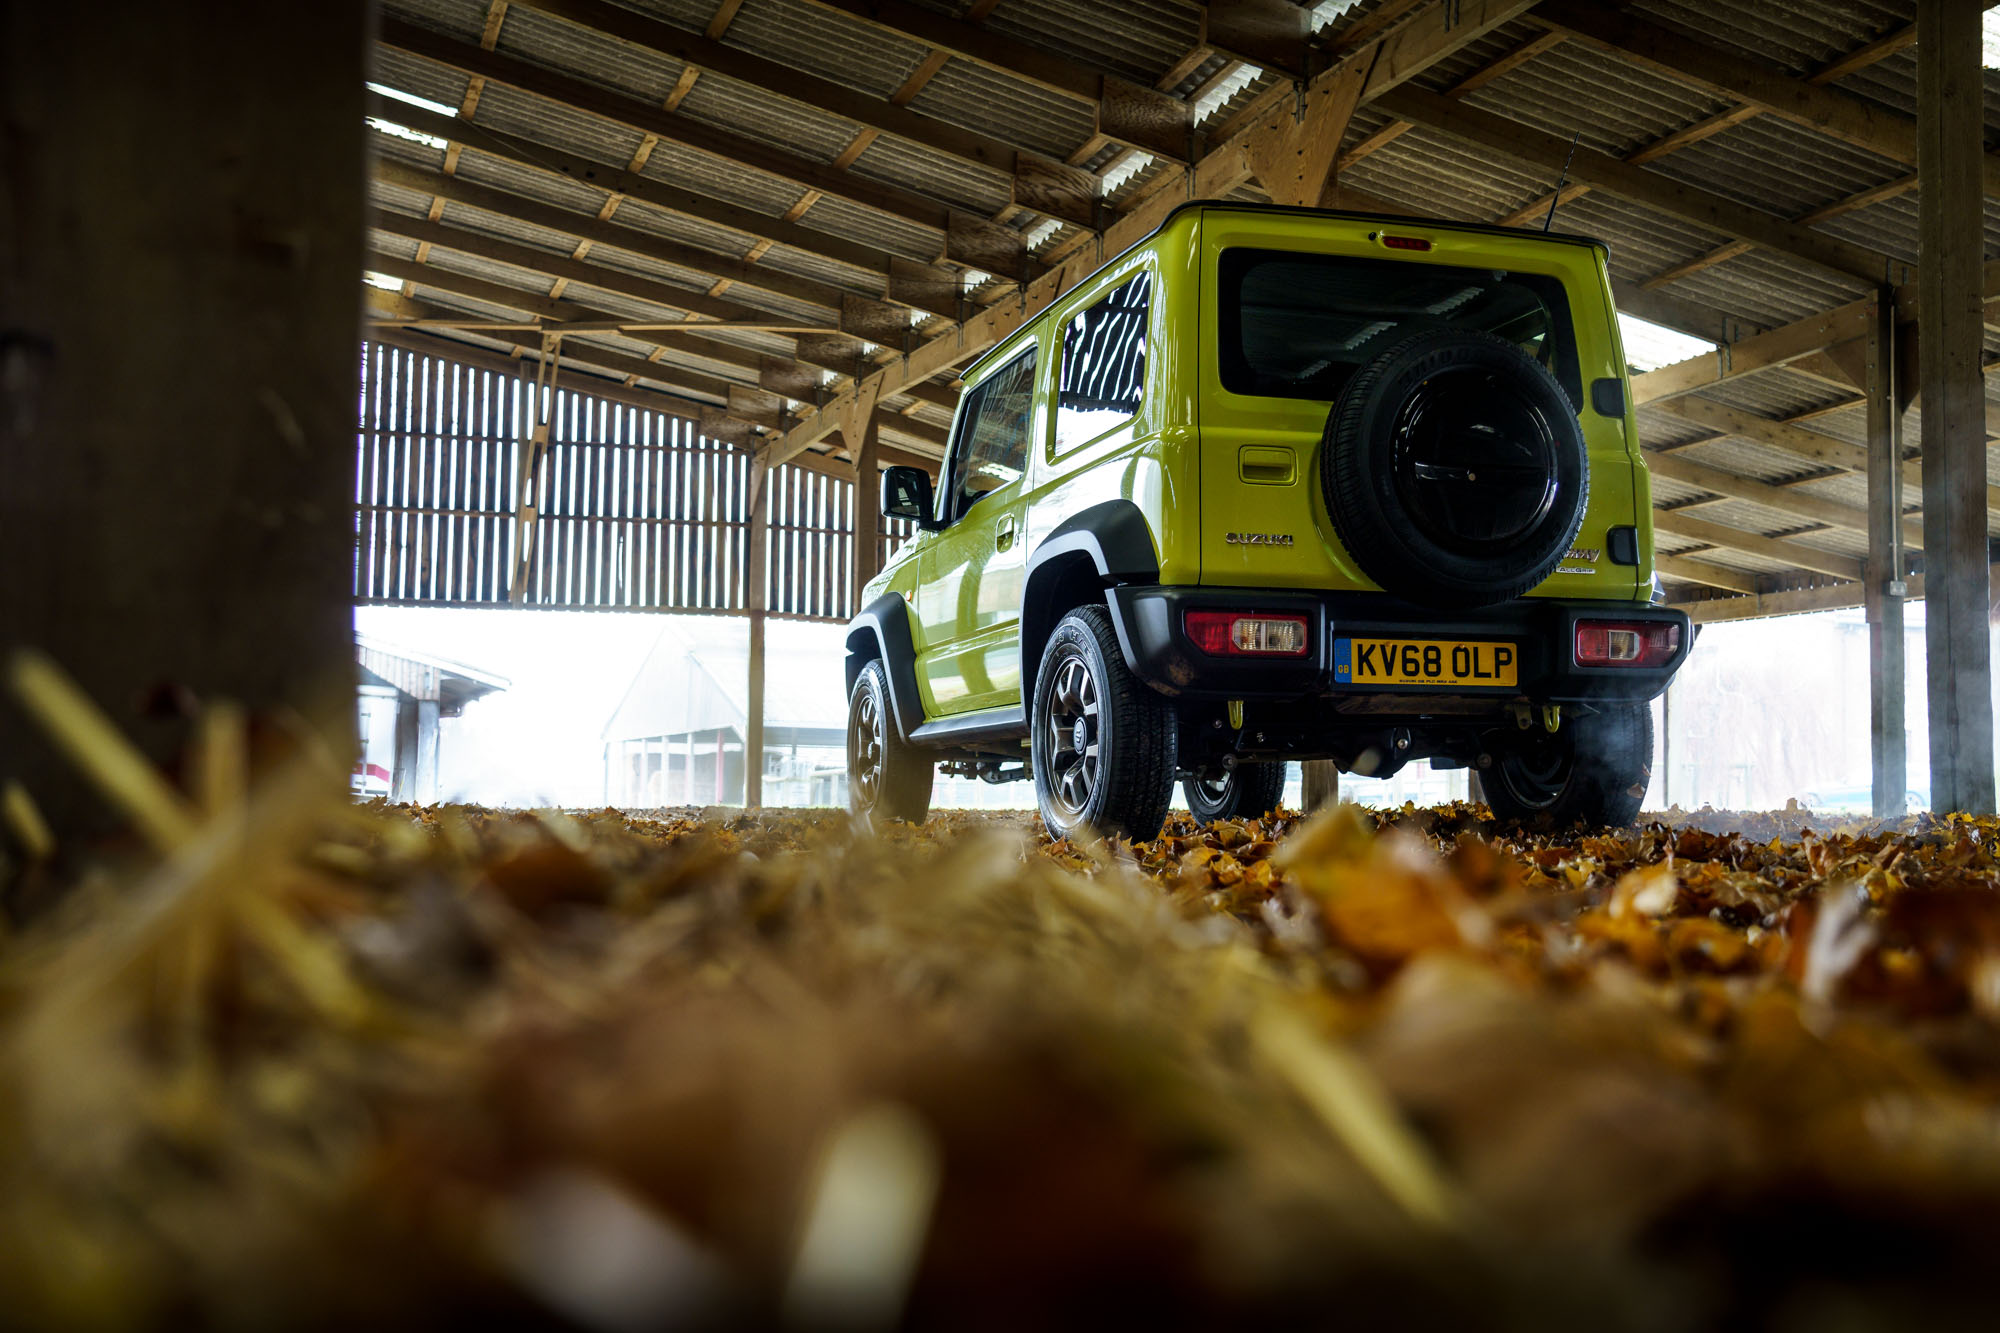 Suzuki Jimny 2019 SZ5 Review (Small Off Road Car - £17,999)